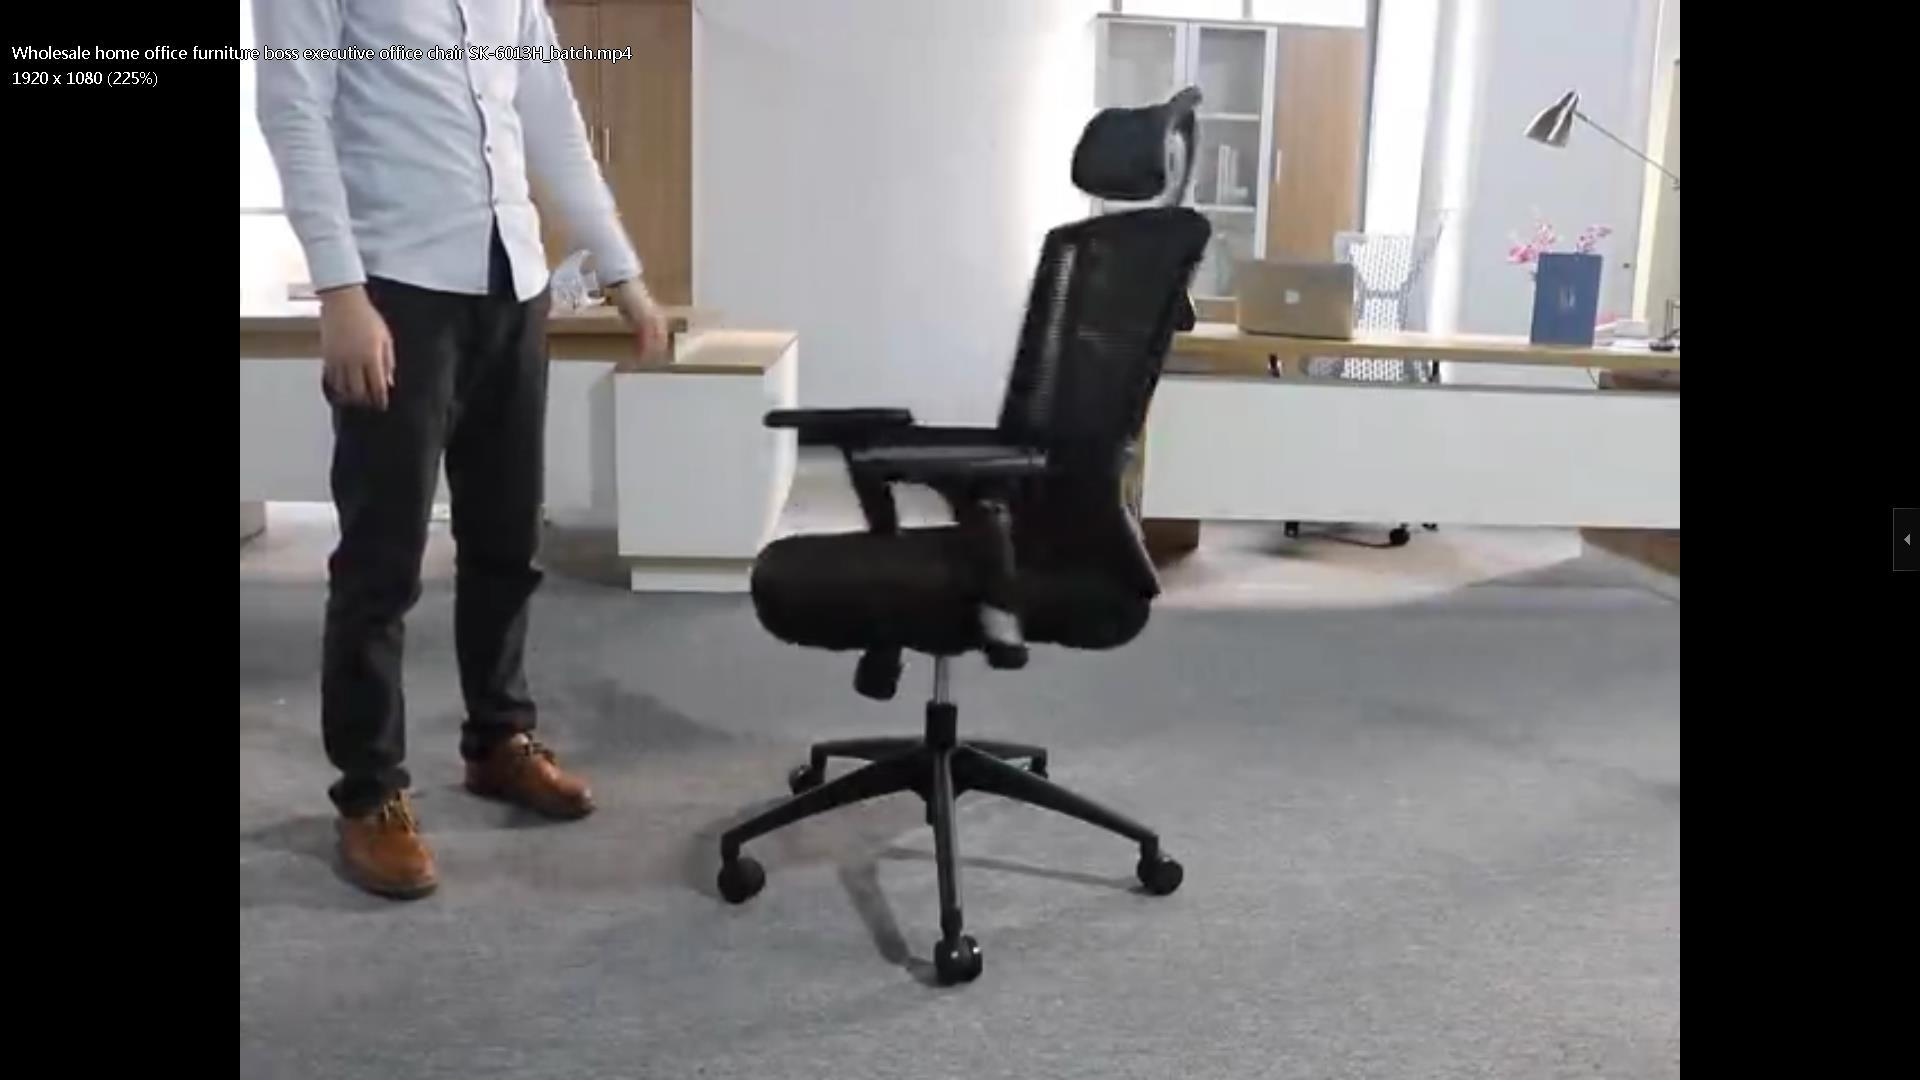 Wholesale home office furniture boss executive office chair SK-6013H